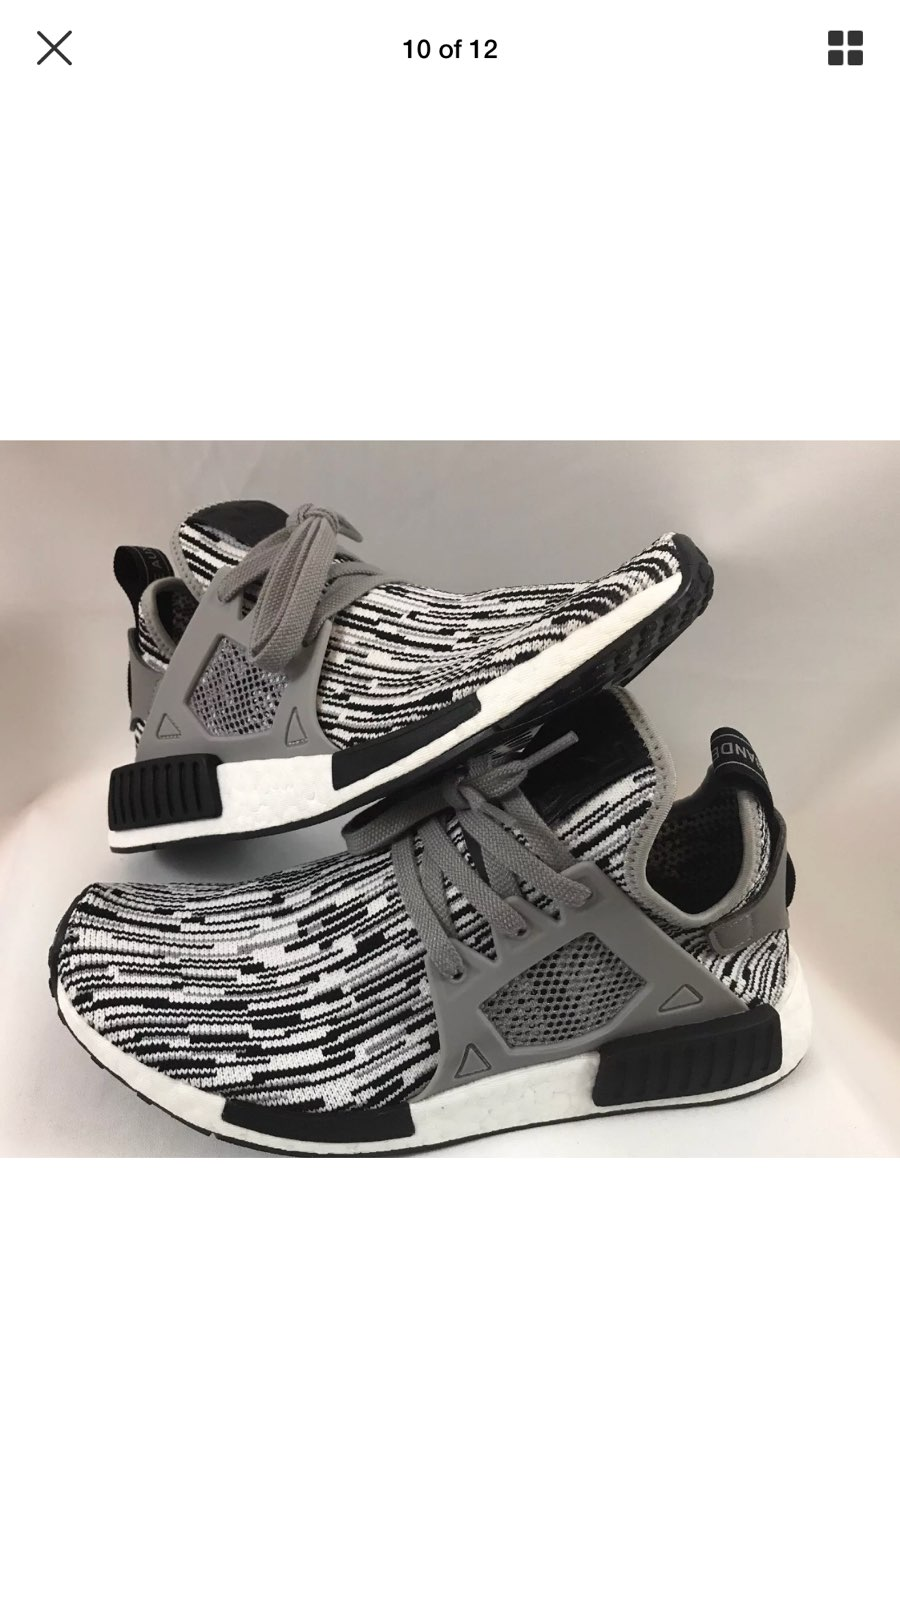 Adidas NMD R2 PK Black white Not R1 XR1 EQT Ultra boost